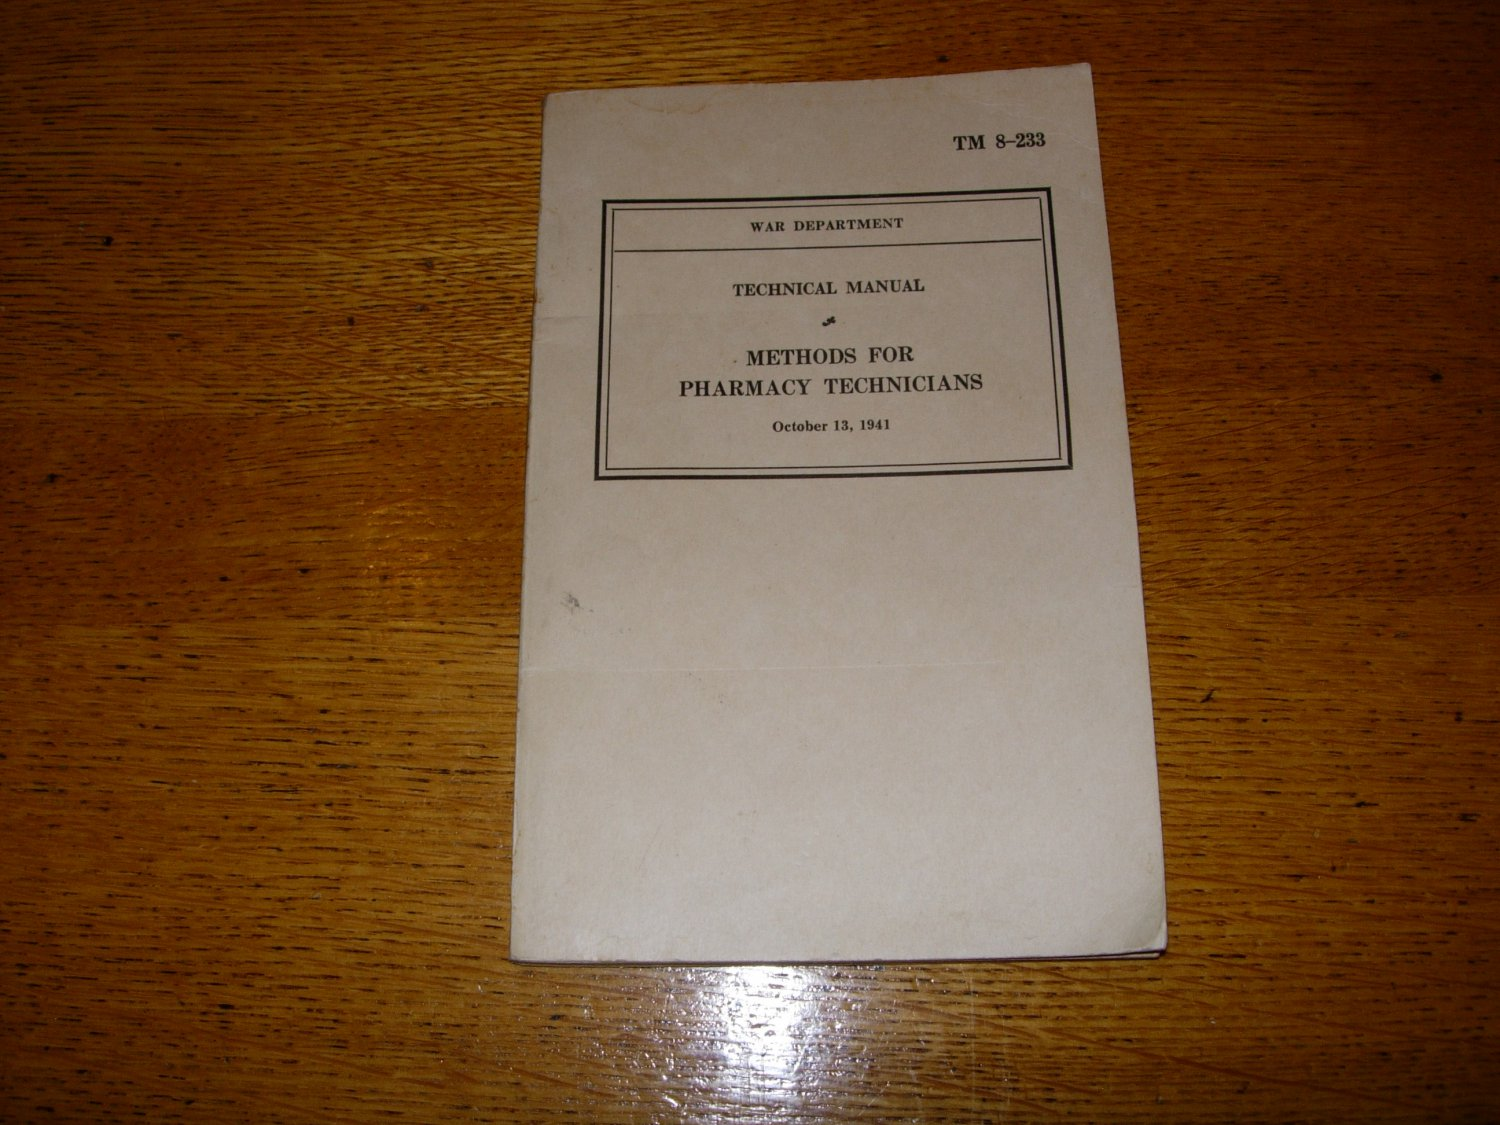 WWII War Department Technical Manual Methods for Pharmacy Technicians 1941